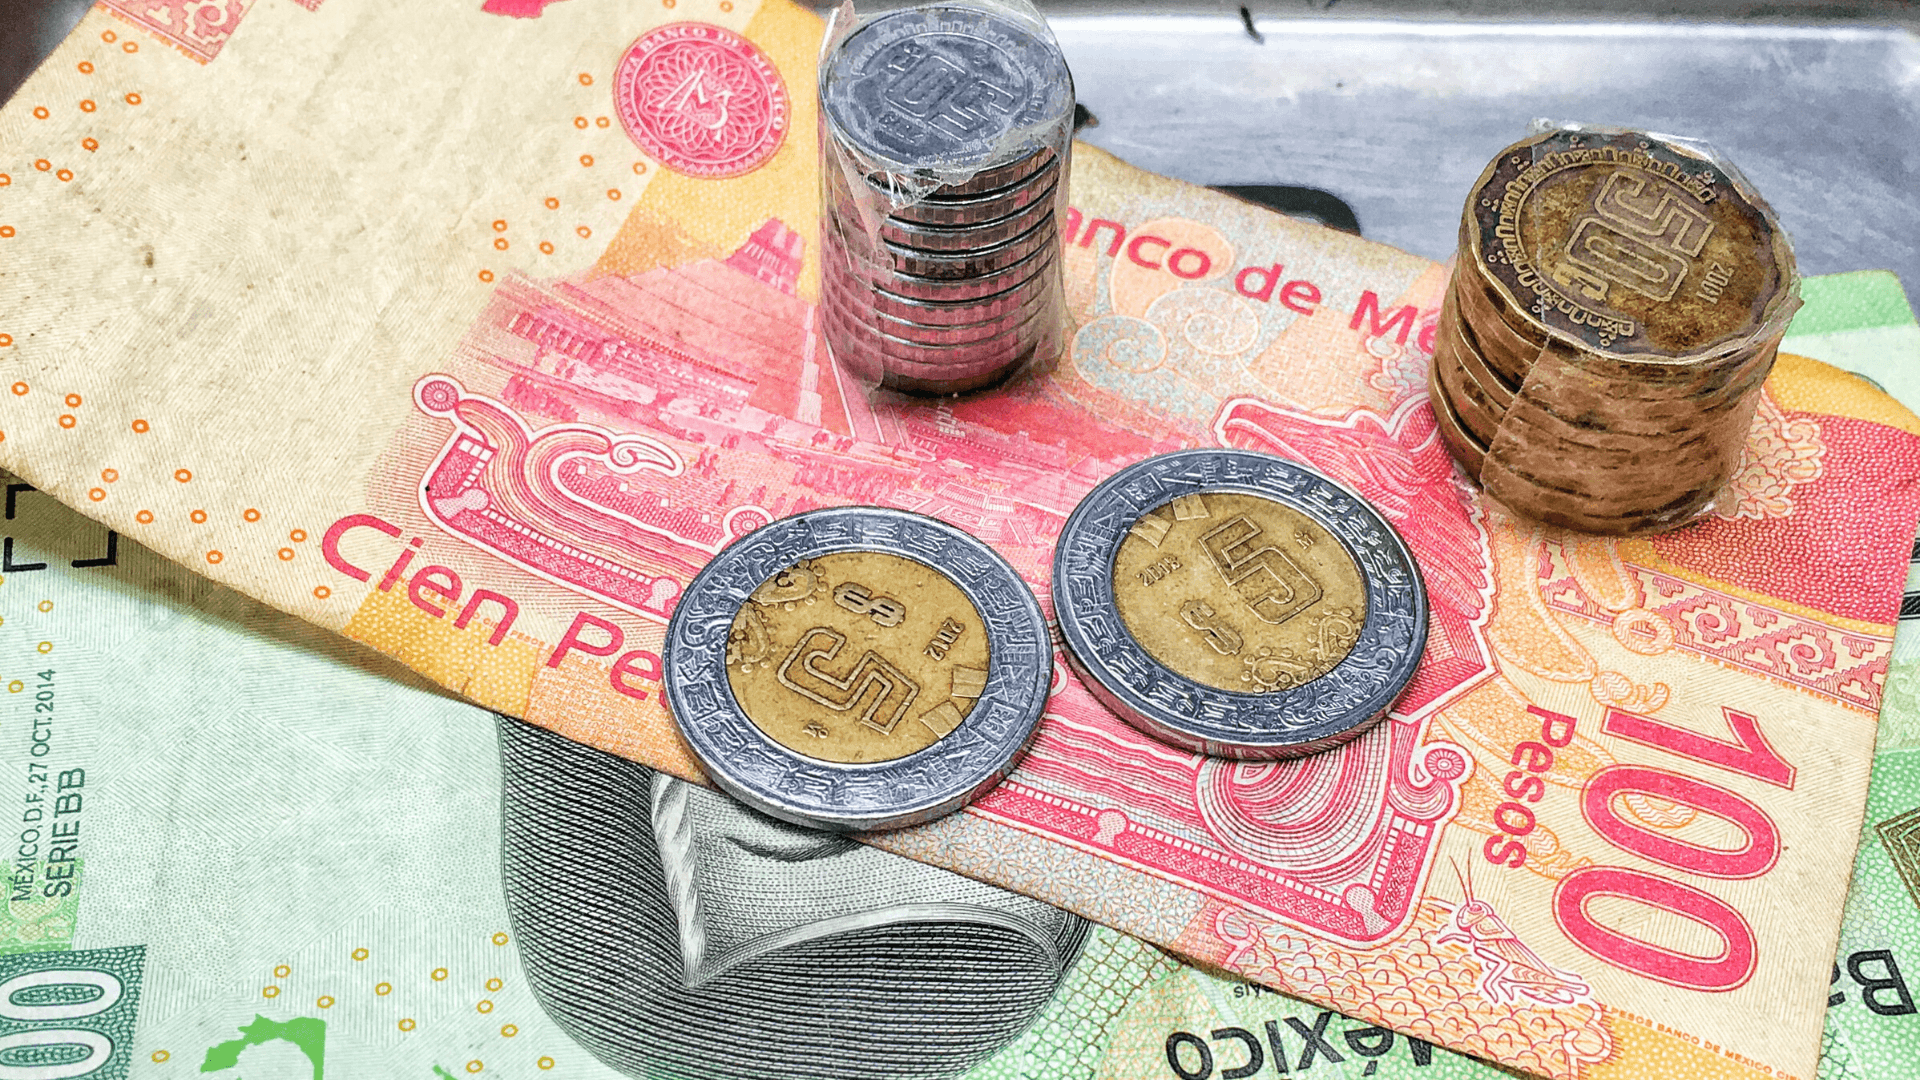 Mexican peso bills and coins